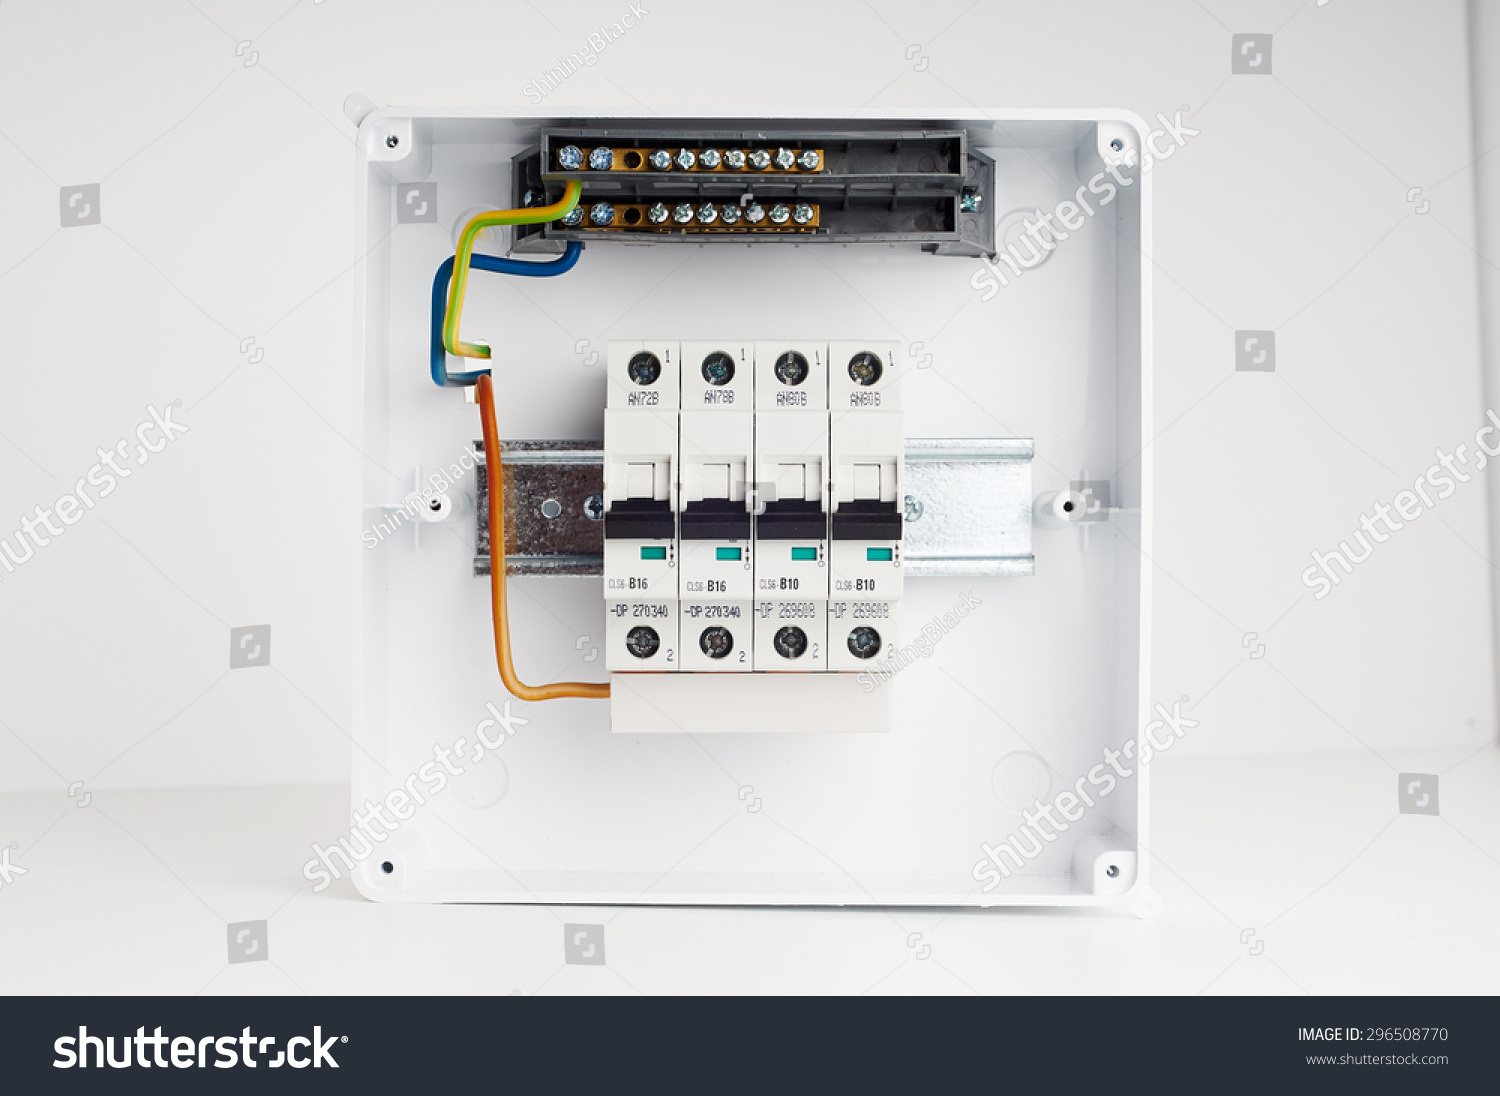 hight resolution of electrical cabinet with four automatic fuses with wires ready for installing electricity distribution box